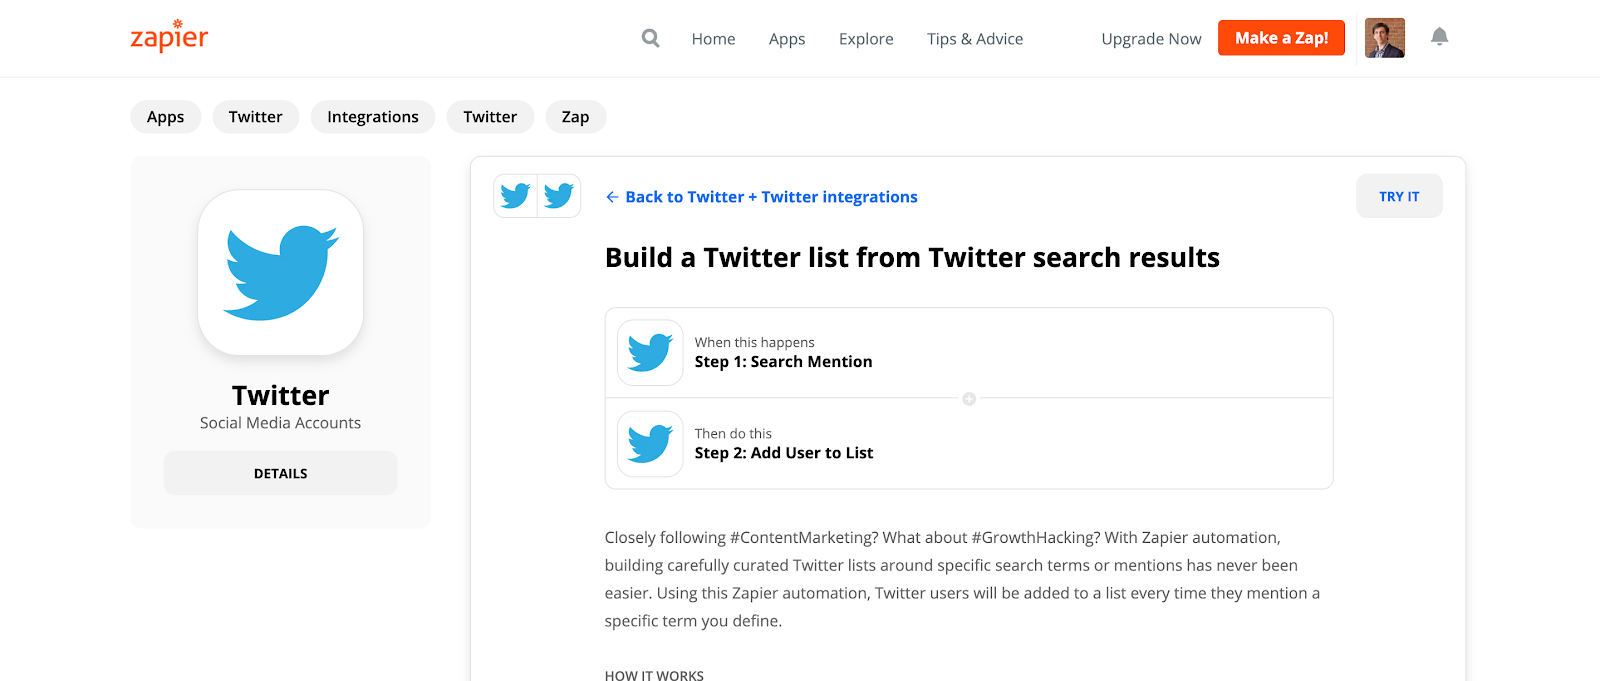 organic-twitter-hacks-build-list twitter hacks Twitter social media hacks social media organic twitter hacks